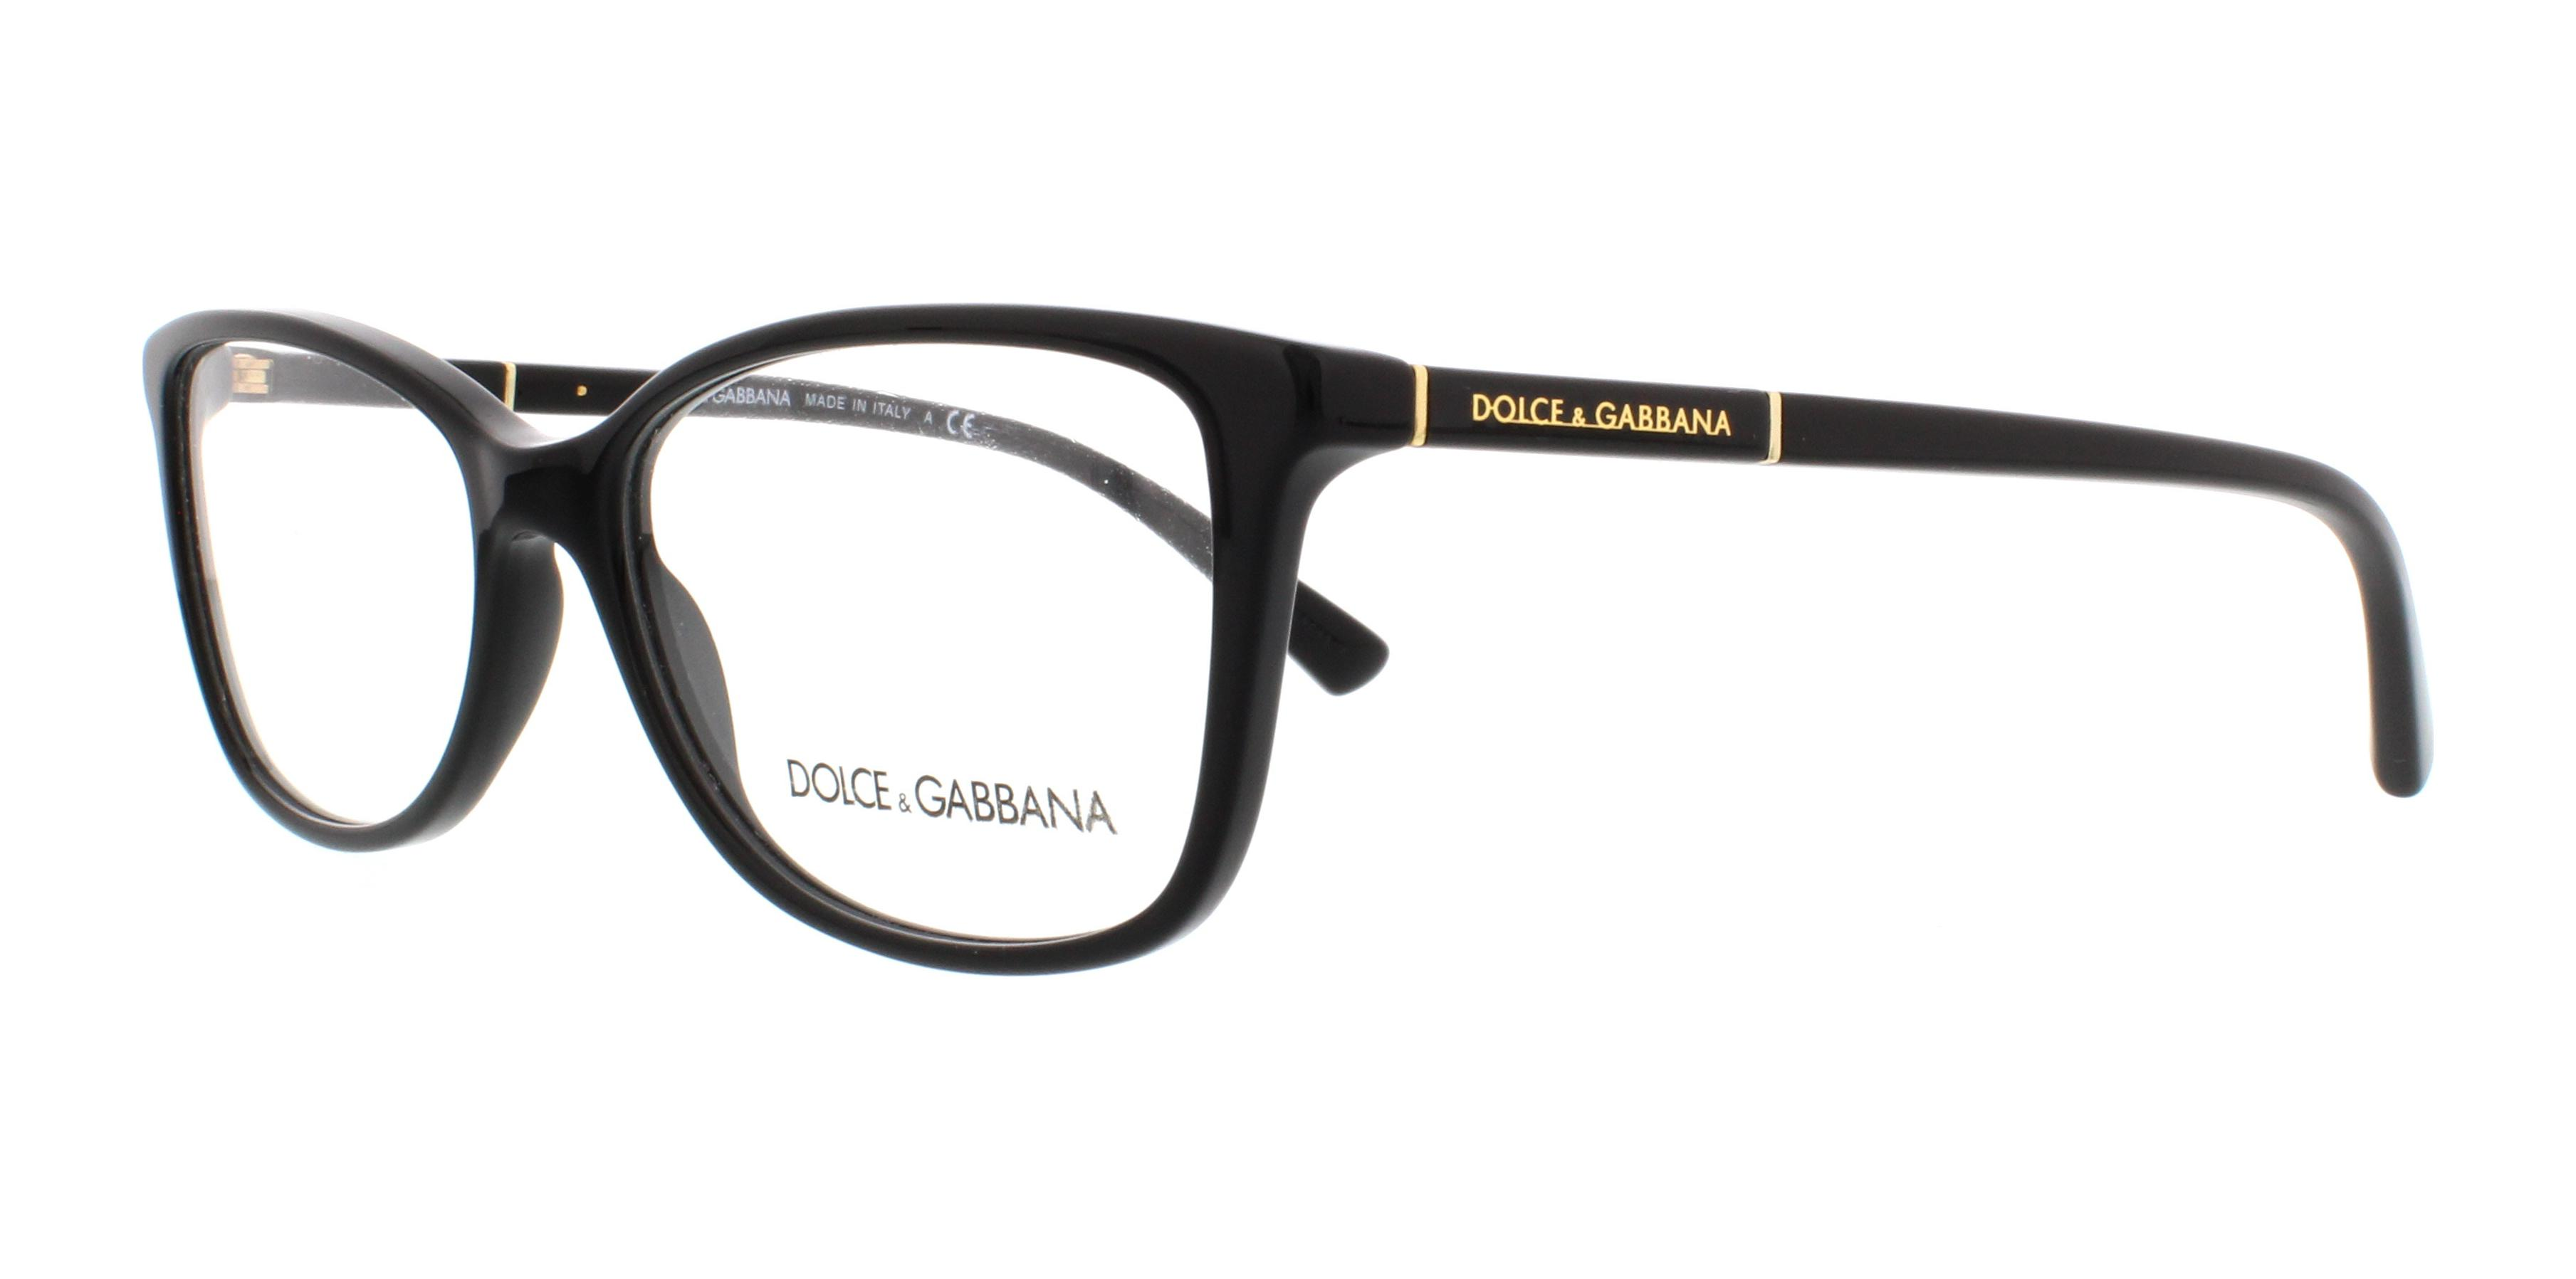 e264c812e4 Dolce And Gabbana Mens Glasses Frames - Bitterroot Public Library